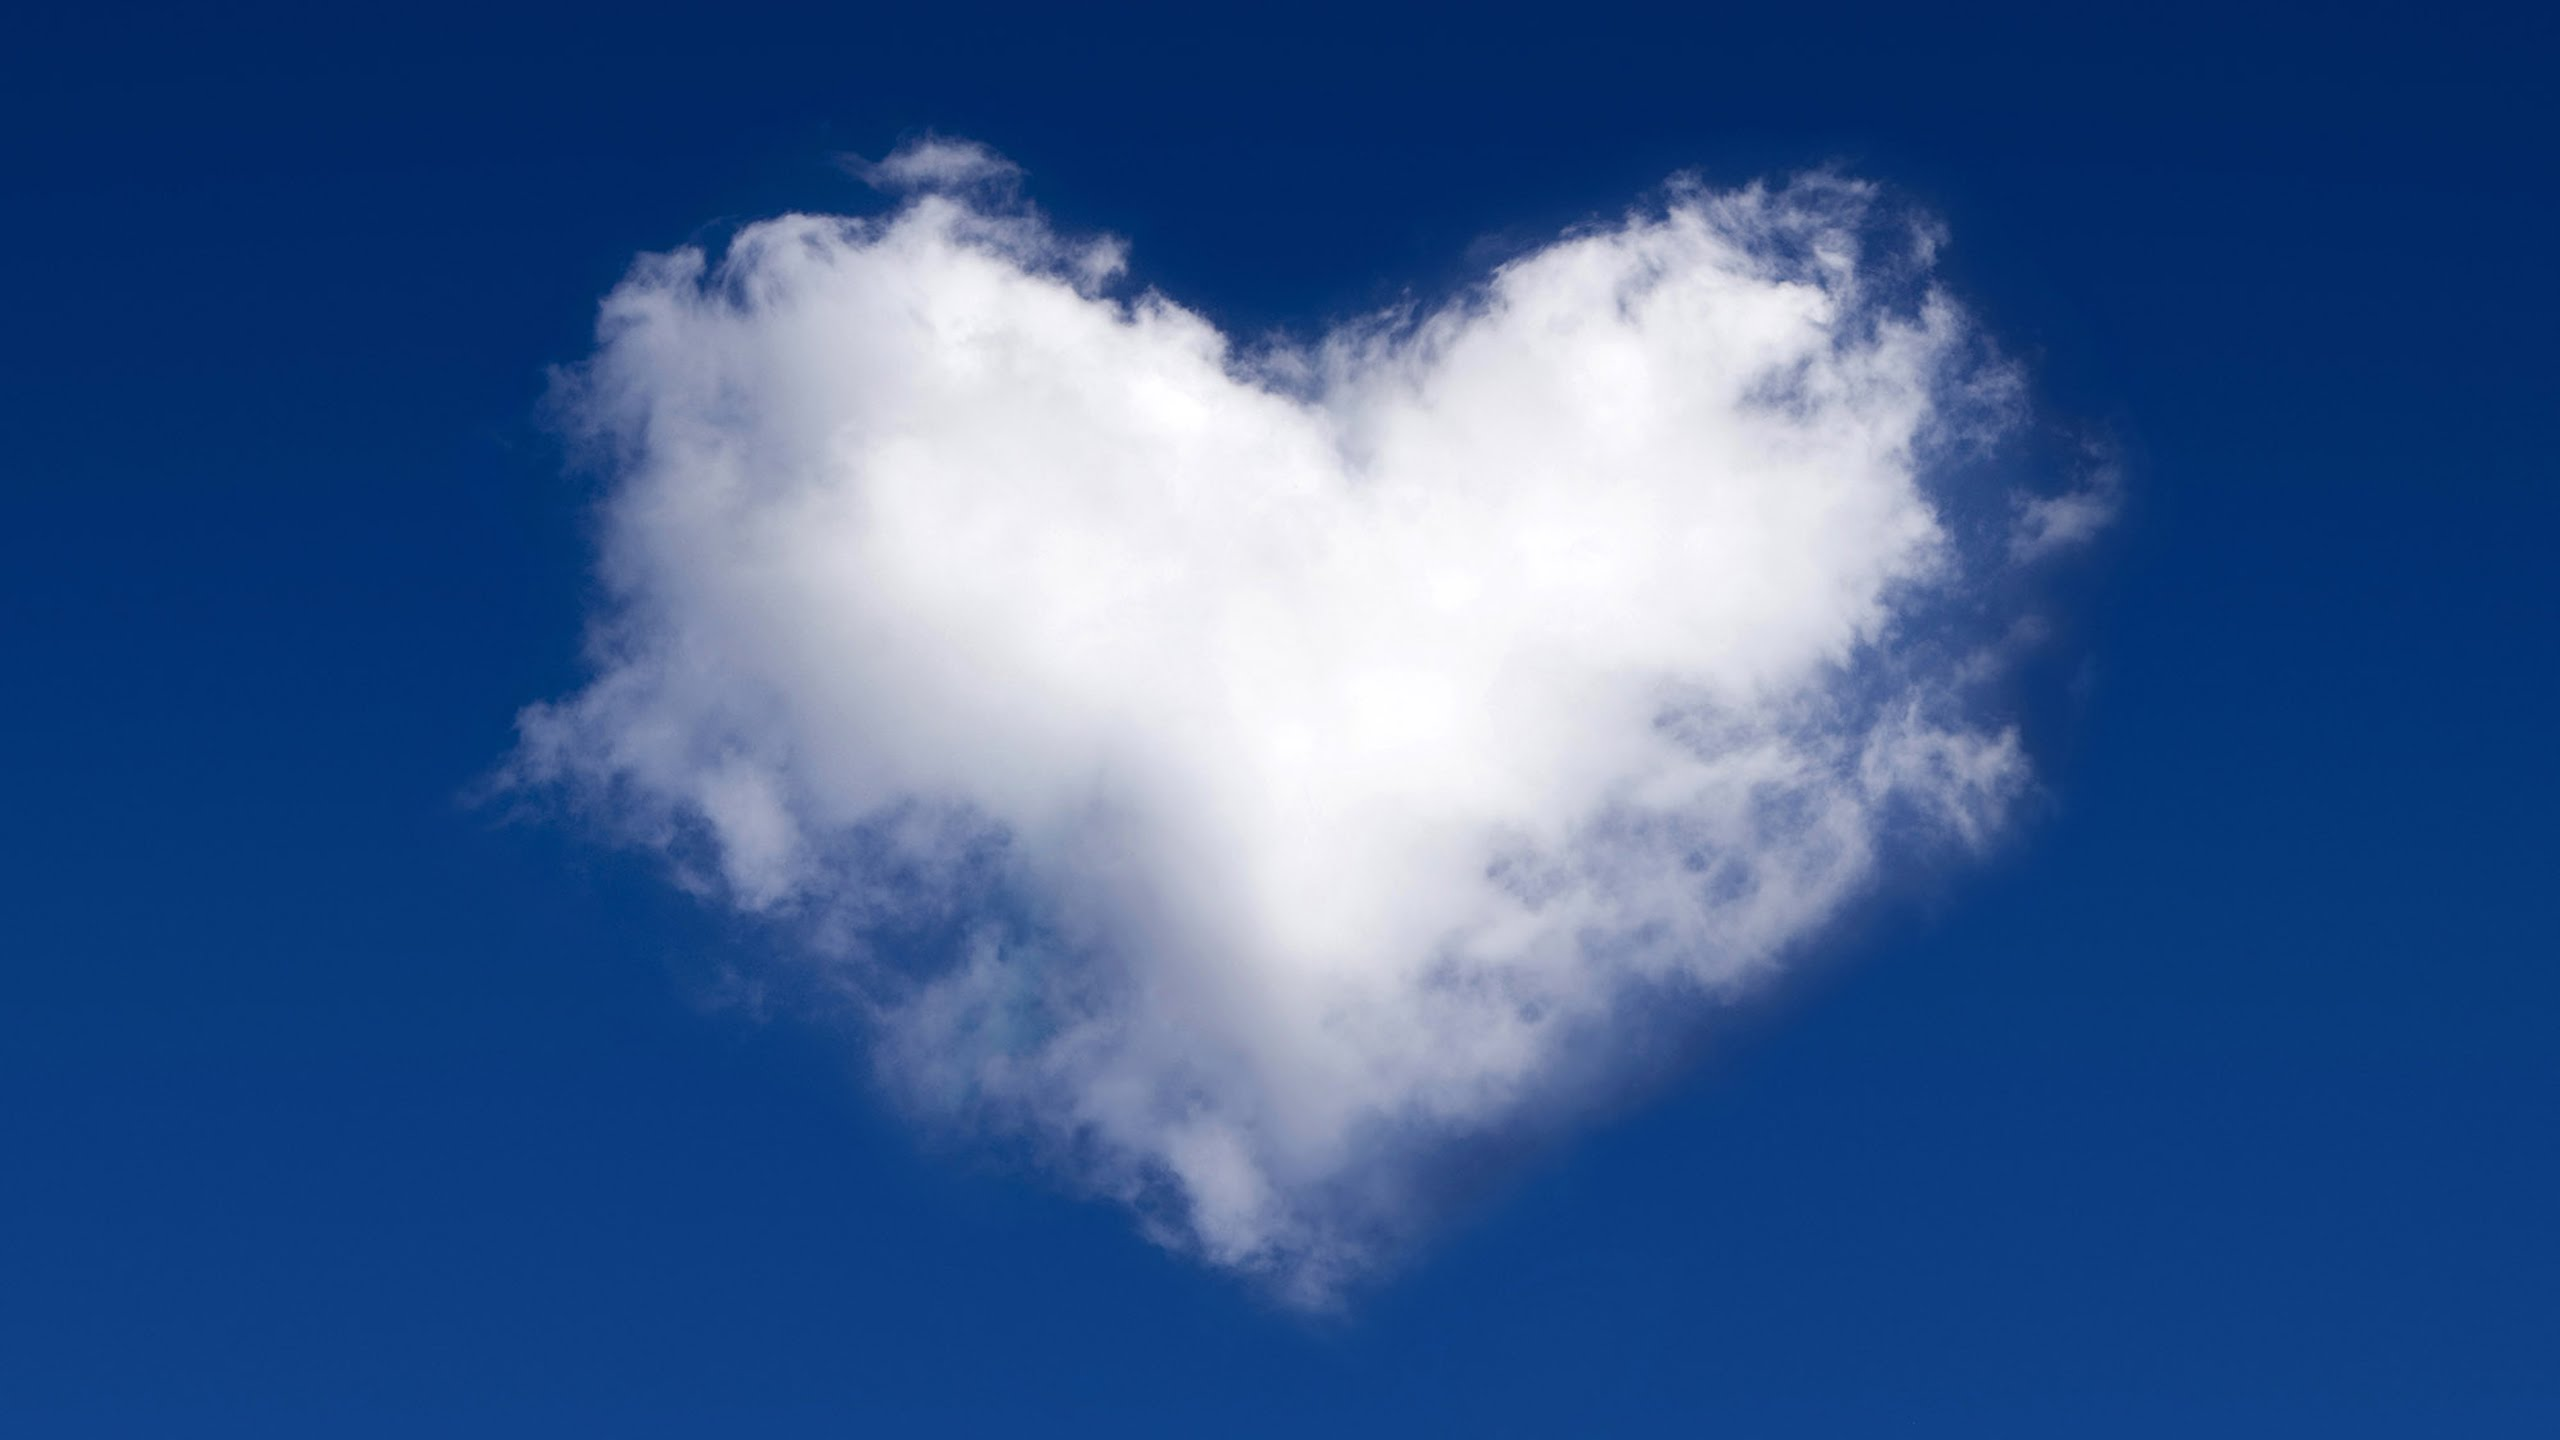 heart shaped cloud 04 of 57 – real love clouds picture in 4k | hd